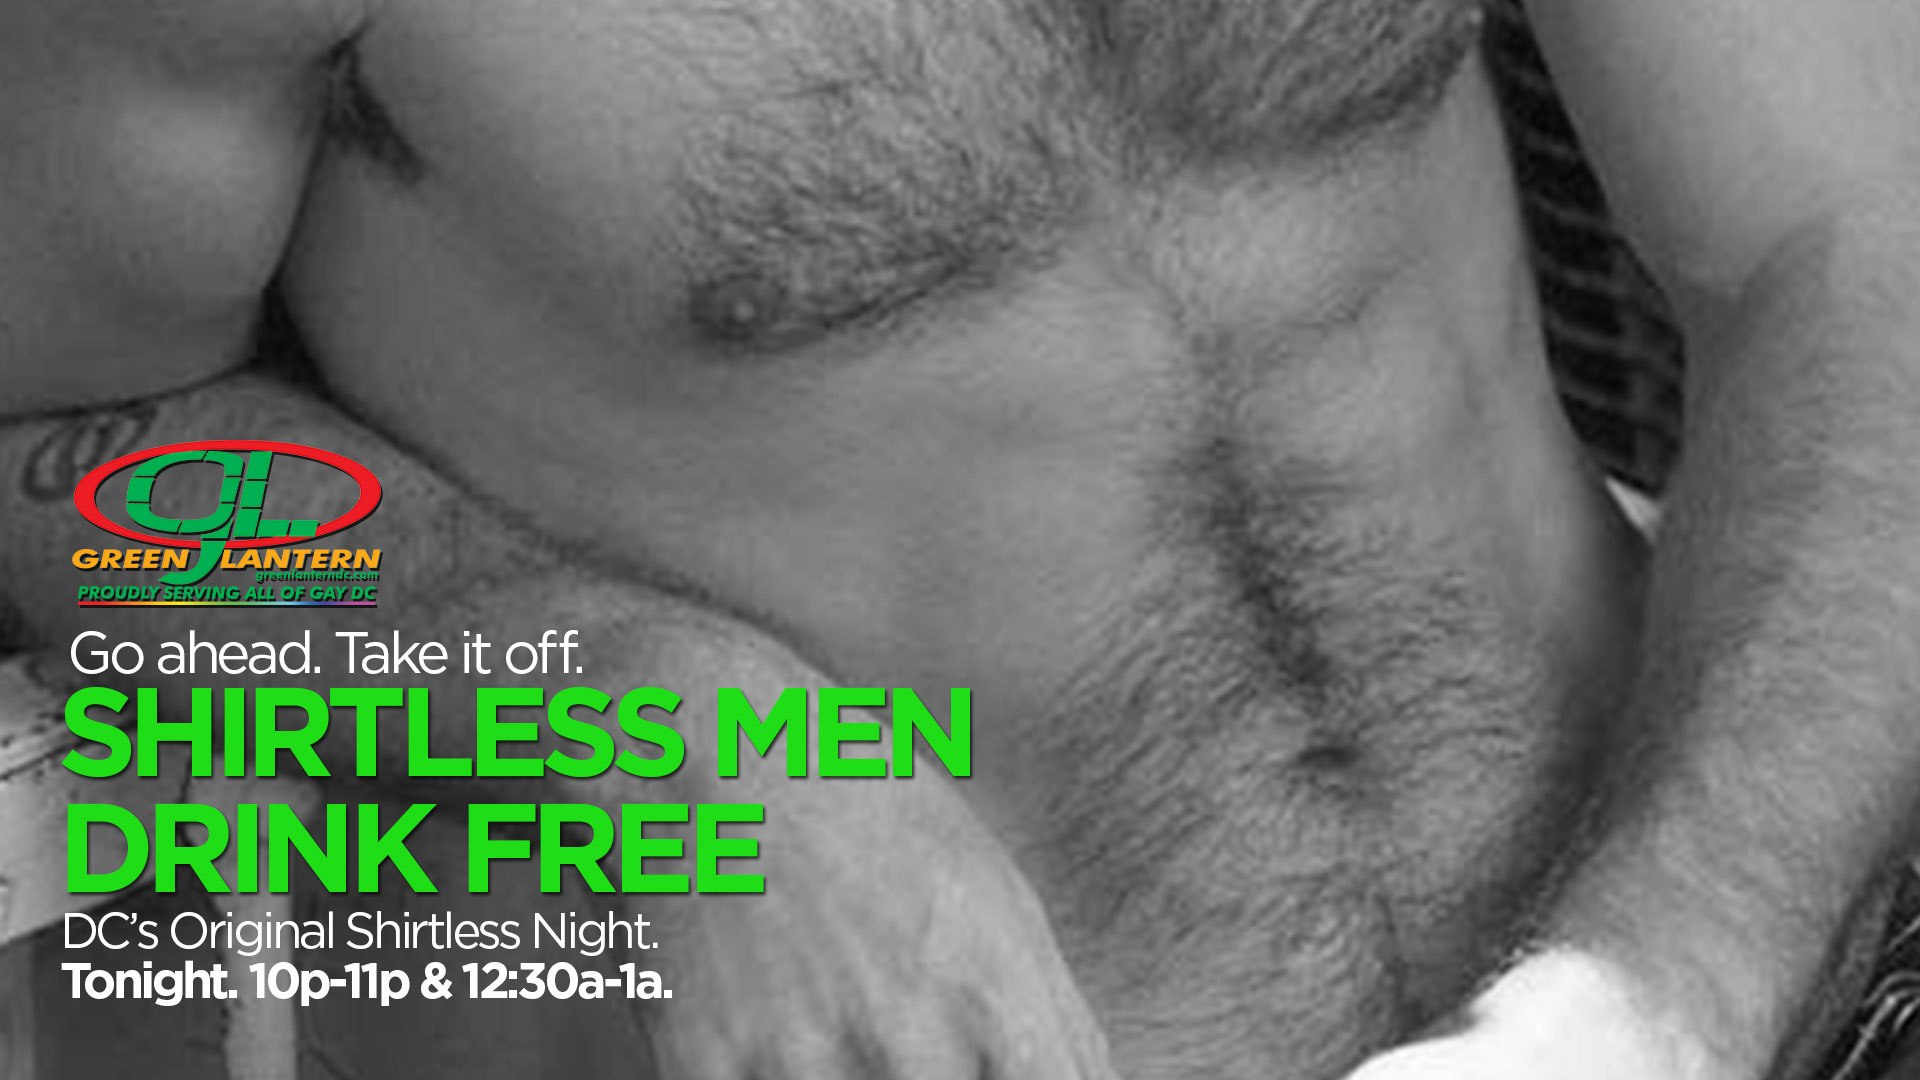 Shirtless Men Drink Free